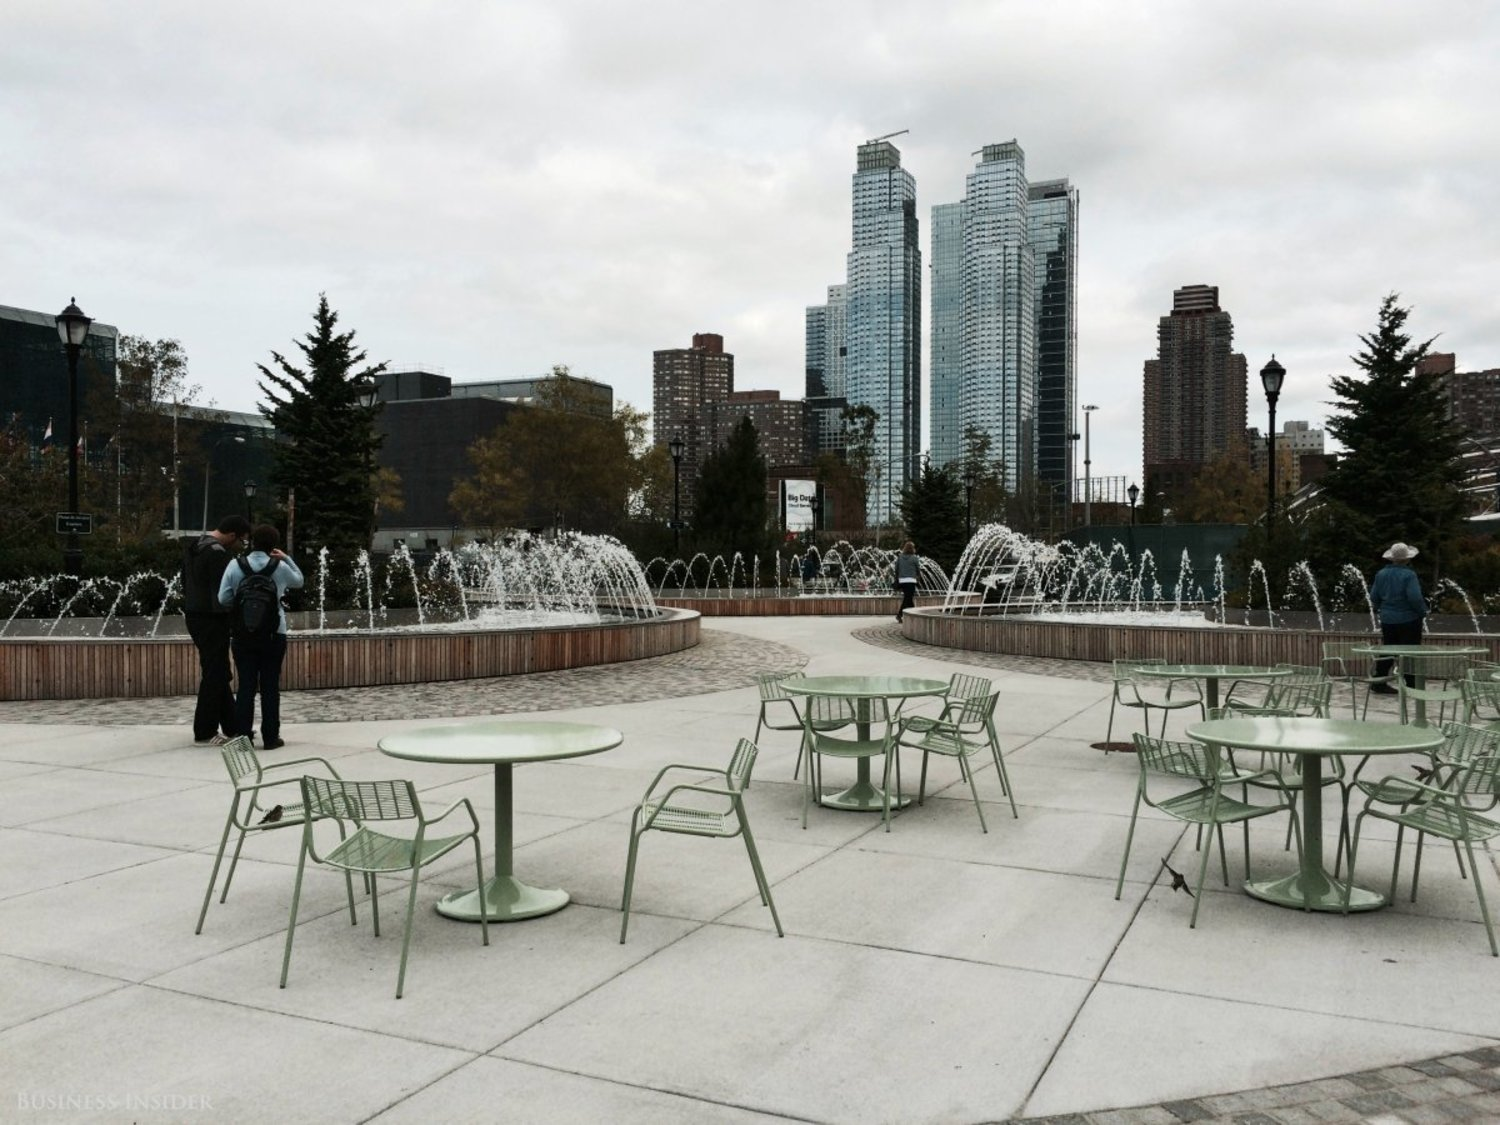 The park offers tables and amphitheater benches in front of three modern fountains and a gorgeous view of towers to the north.